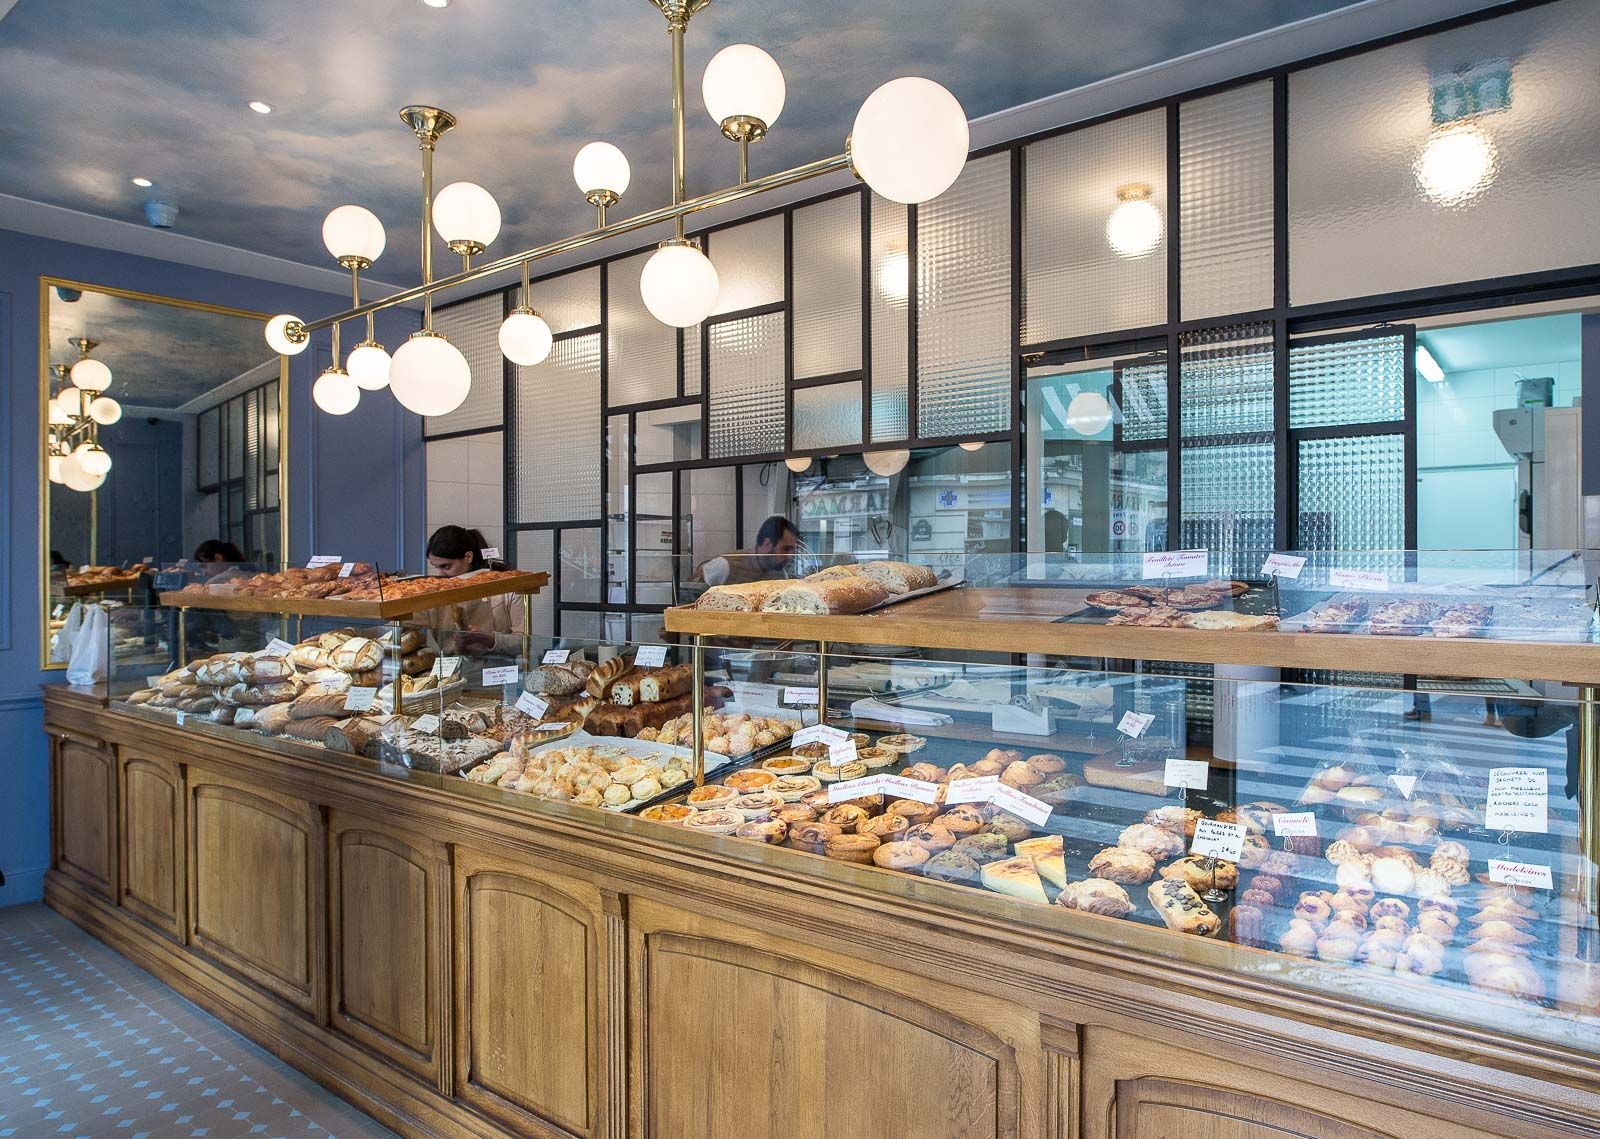 gana boulangerie architecte interieur decorateur paris studio janreji 8